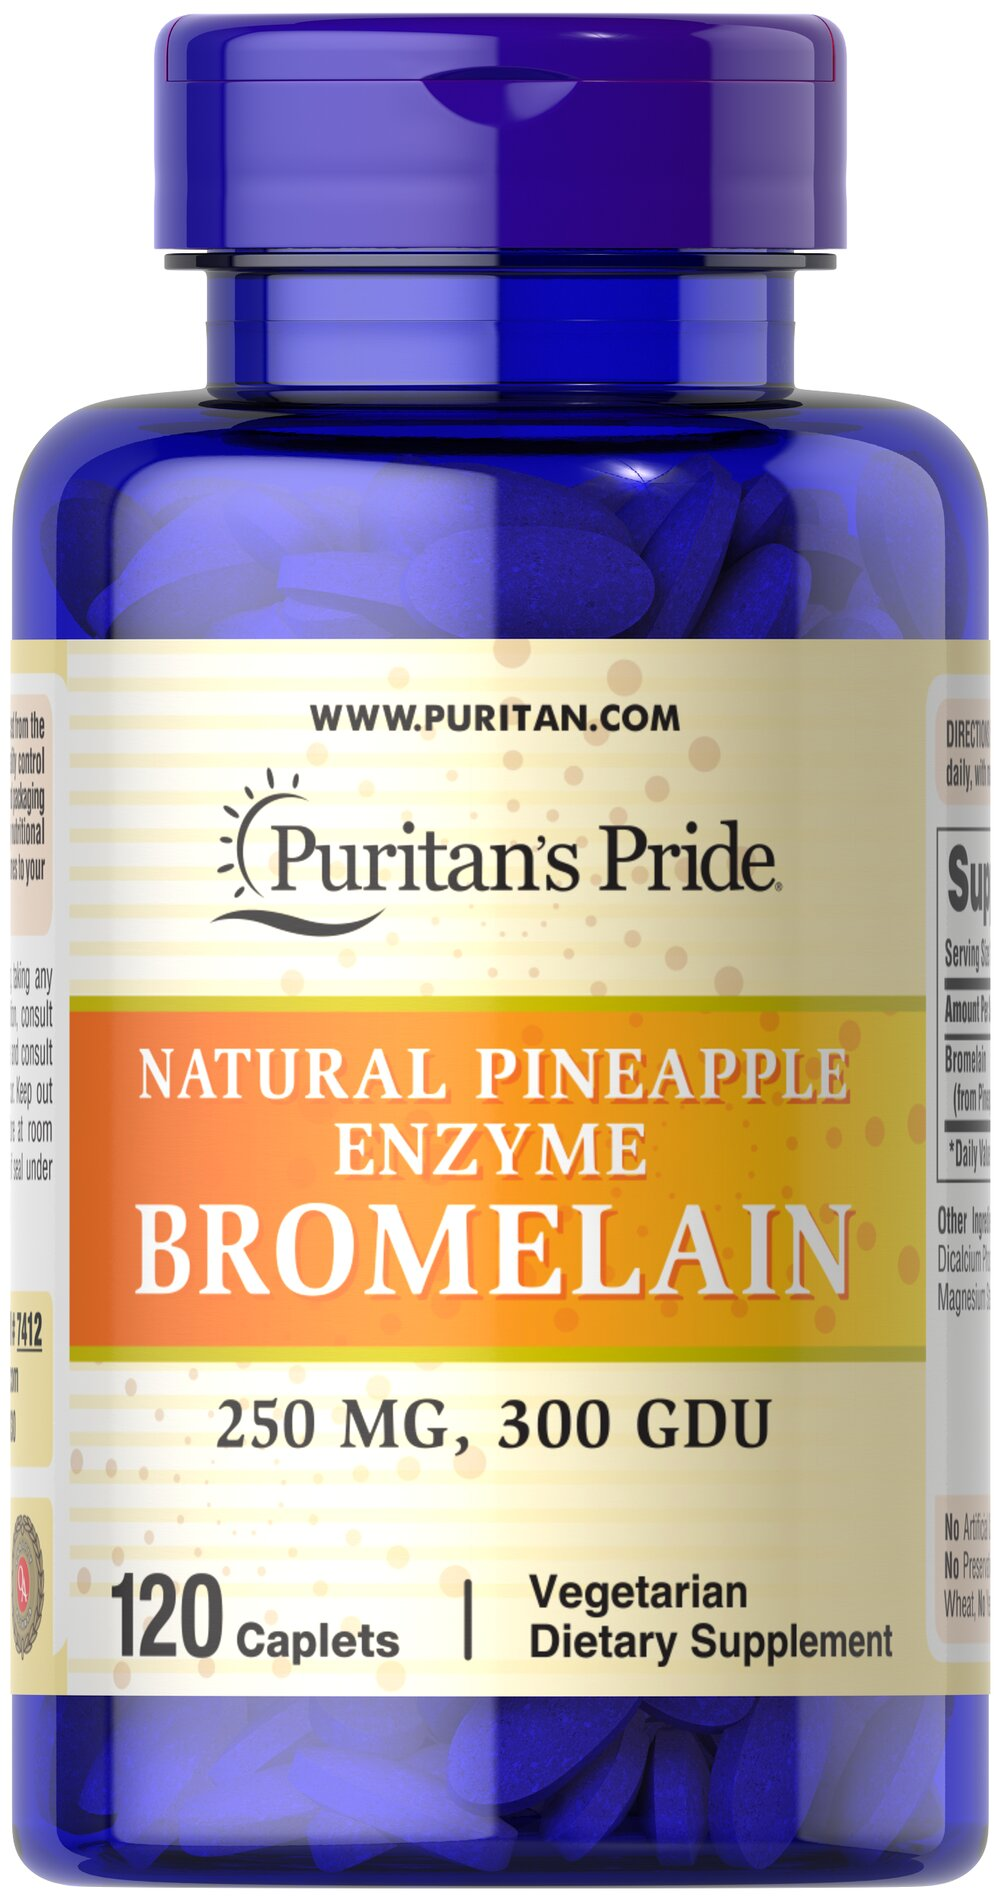 Bromelain 500 mg 300 GDU/gram <p>Derived from the stems of pineapple, Bromelain is a natural digestive enzyme.** </p><p>As a natural enzyme, Bromelain helps digest protein in the gastrointestinal tract.** </p><p>In general, enzymes break down the nutritional components of proteins, fats and carbohydrates, making these nutrients available for the body's energy needs, cell growth and other vital functions.**</p> 120 Tablets 500 mg $19.99